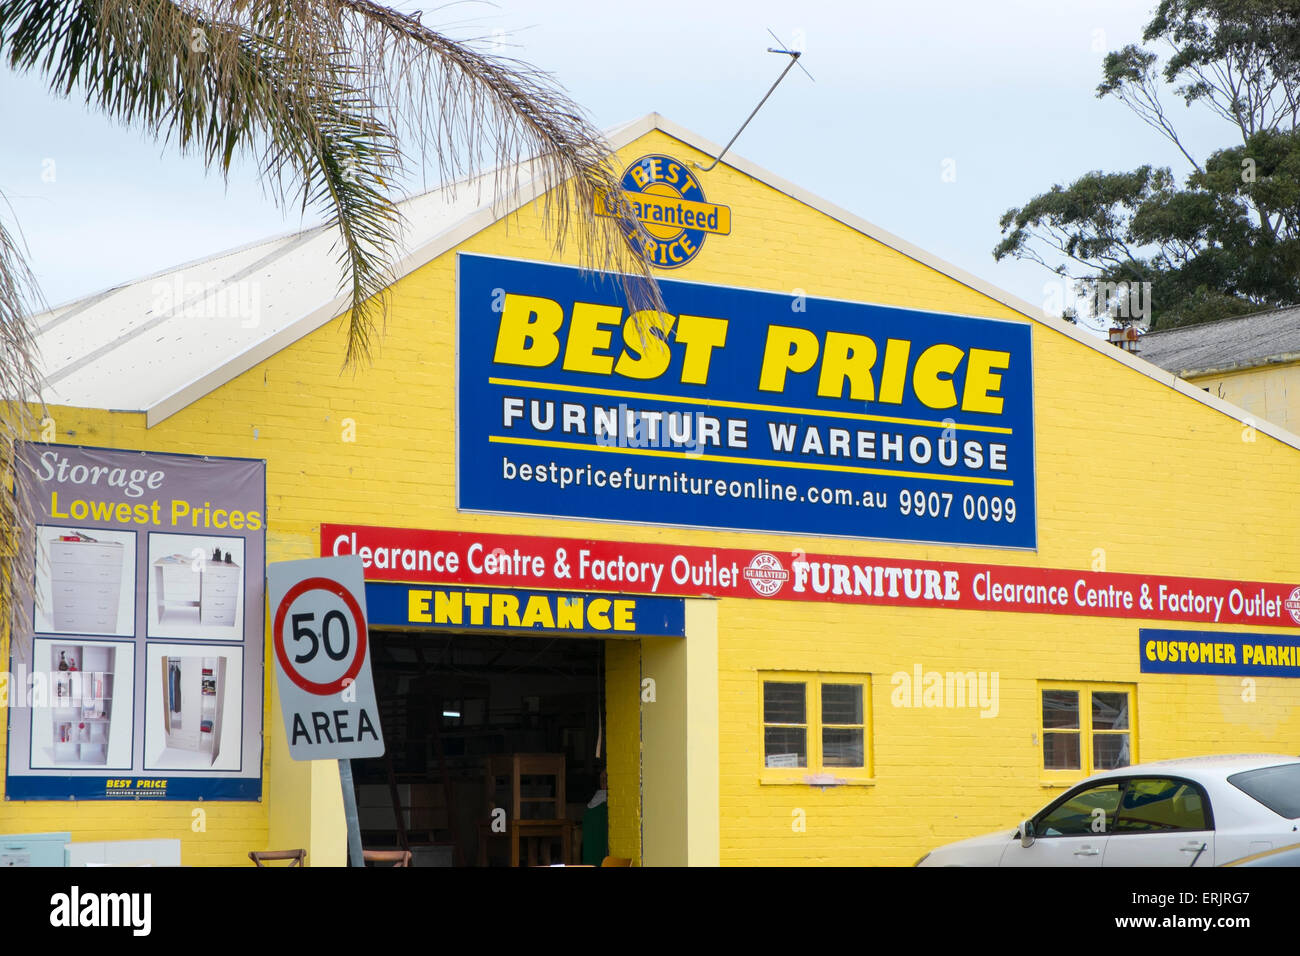 Australian furniture store in brookvale sydney selling chairstables and other household items